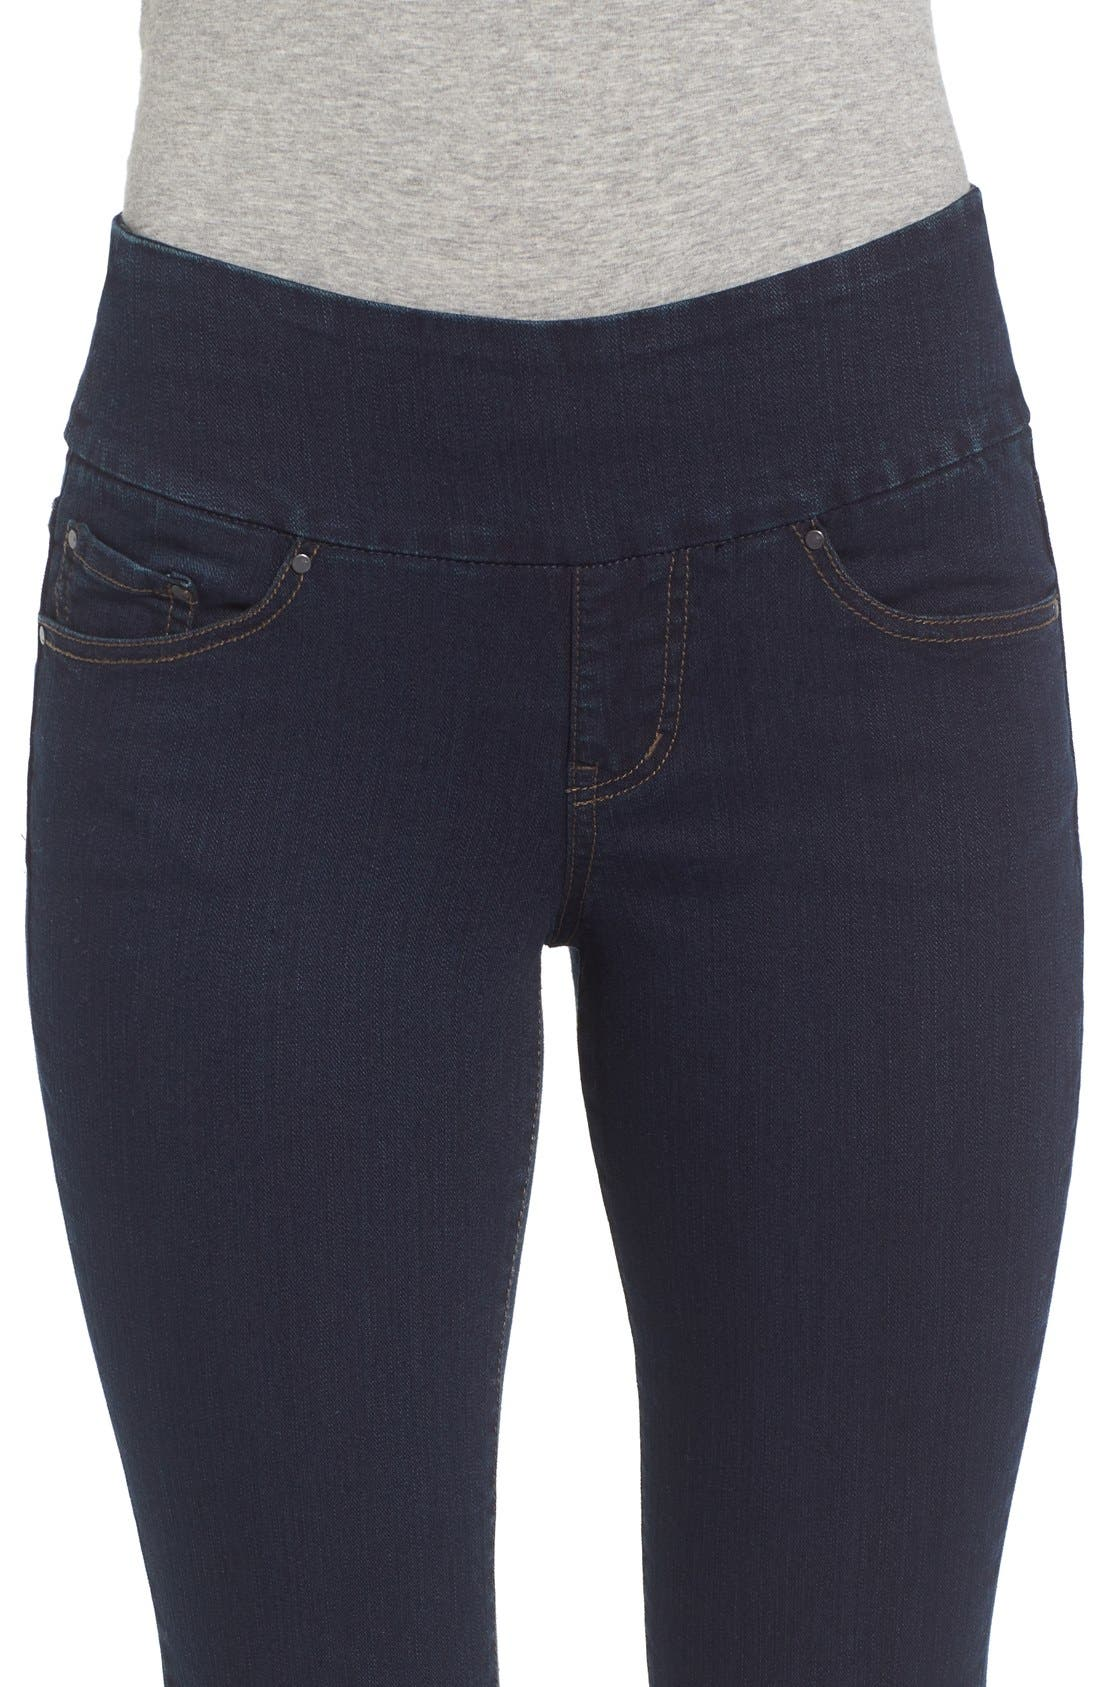 'Paley' Bootcut Jeans,                             Alternate thumbnail 2, color,                             402